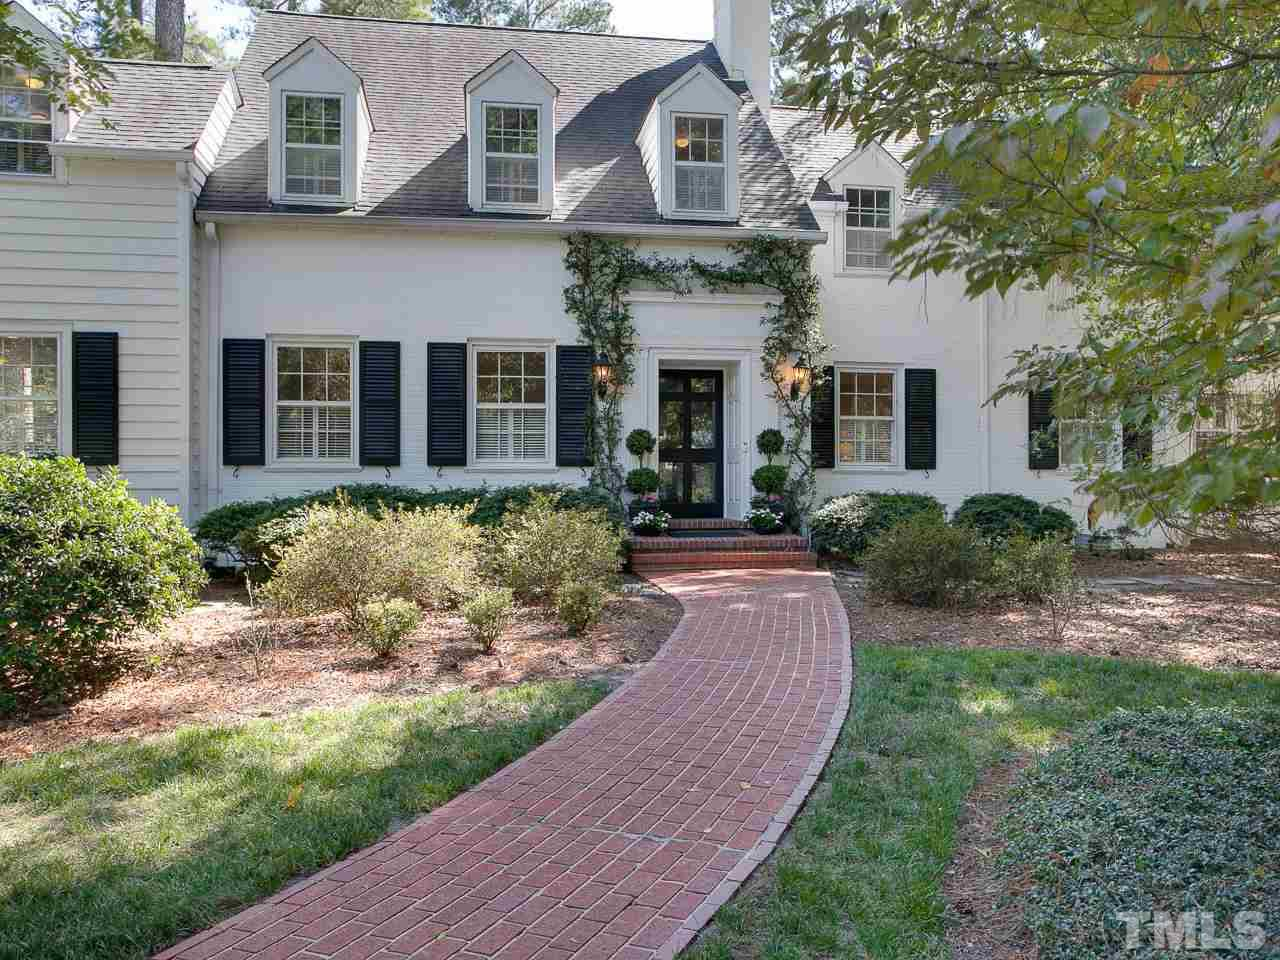 A rare opportunity to own a meticulously preserved George Watts Carr Colonial Revival elegant beauty.  This historical treasure has been methodically updated to preserve its original character & offers a high-end Subzero gourmet kitchen featuring Carrara marble, a luxurious stylish master bath, two quintessential fireplaces & handsome hardwoods throughout. A private covered intimate back porch, deck & patio offer unparalleled views of the Hope Valley golf course & is perfectly perched on the 7th green.